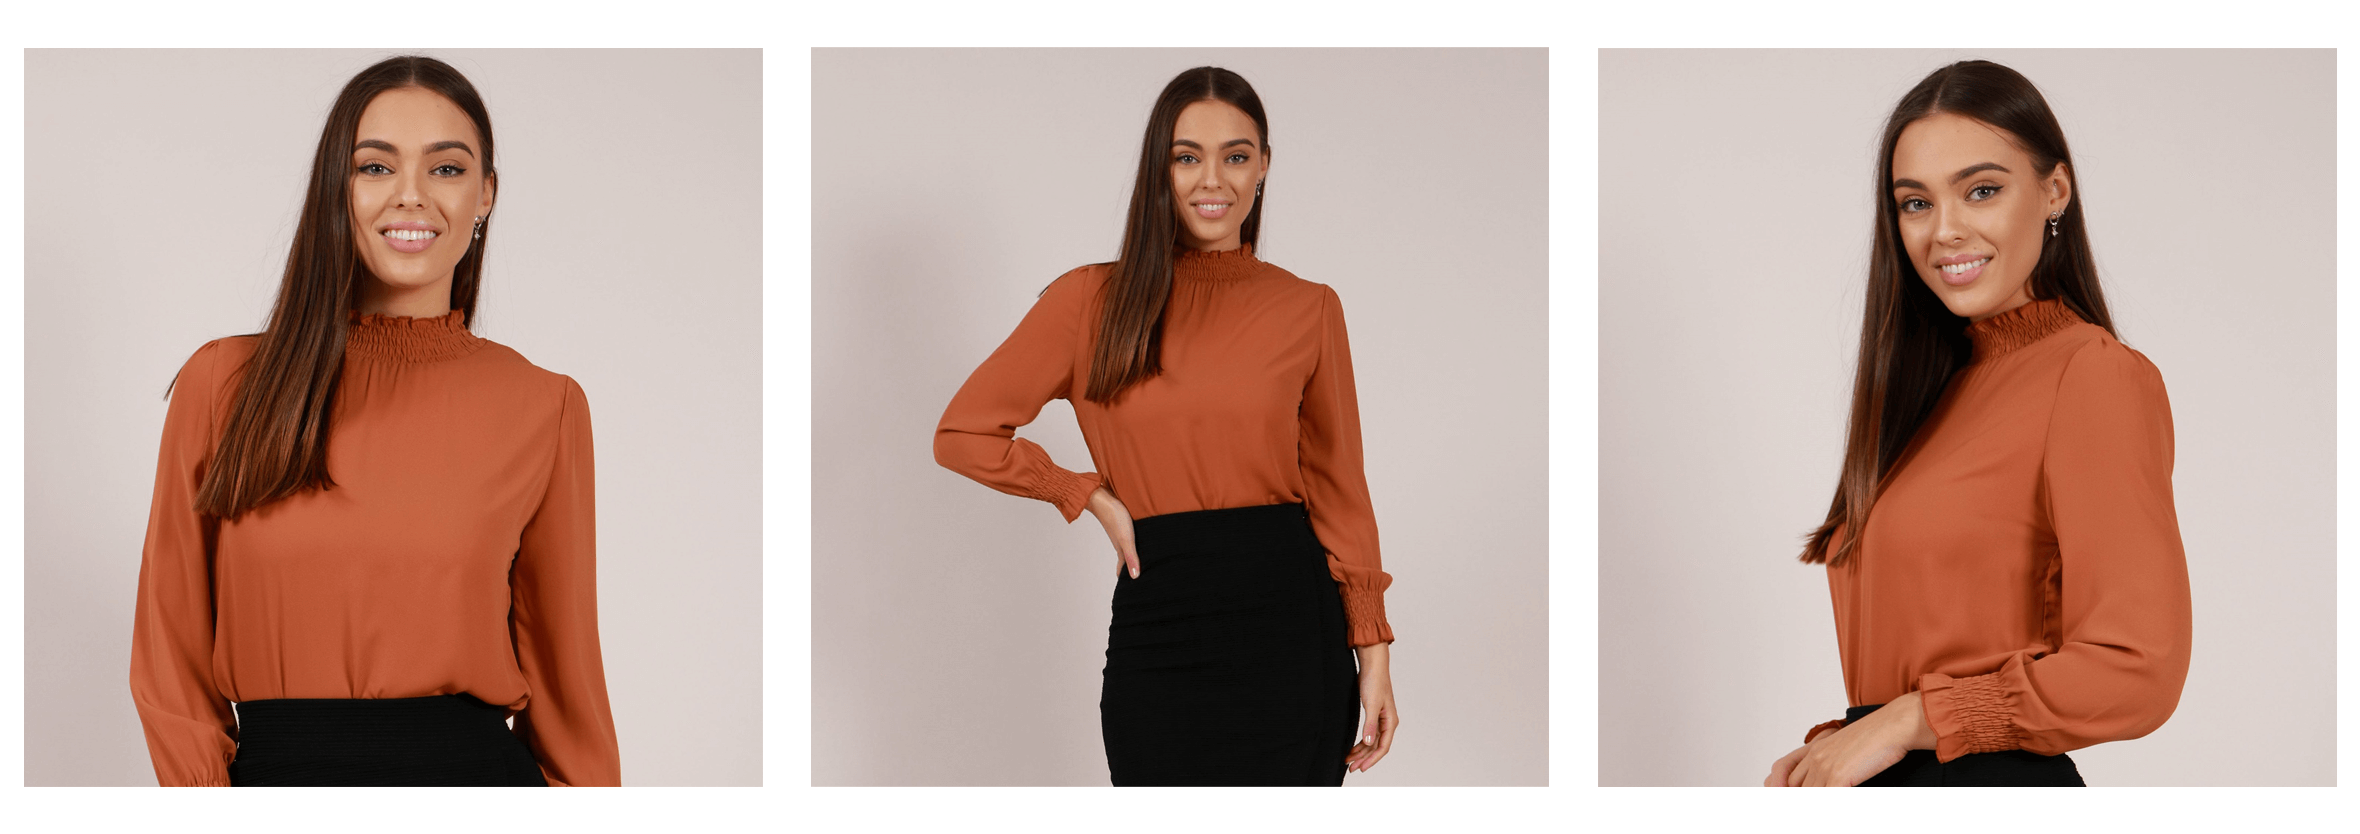 EOFYS Blowout 3 - Long Cuff Sleeve Blouse | Femme Connection